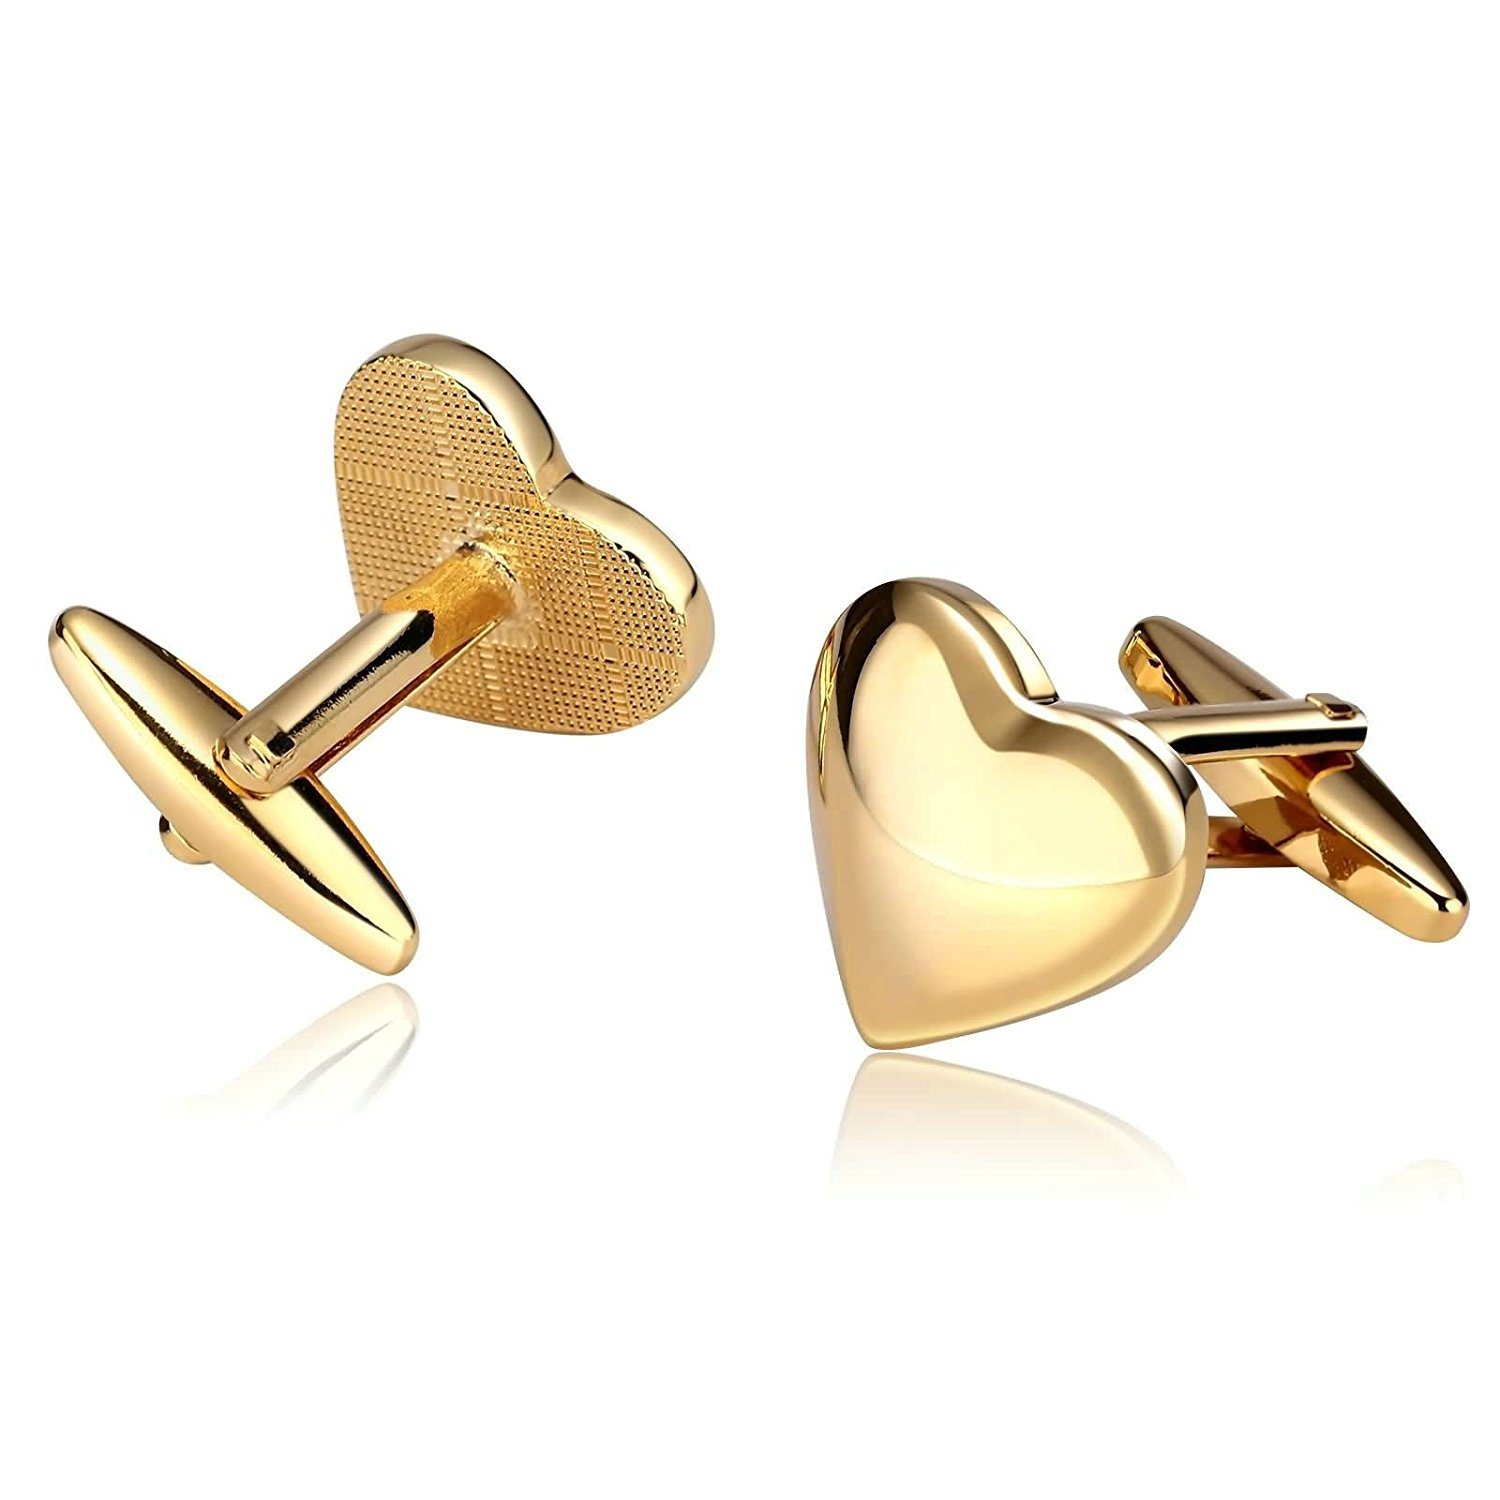 Stainless Steel Mens Cufflinks Love Heart Gold Classic Tuxedo Cufflinks 1.7X1.8CM Dad Unique Jewelry Box Fancy Elegant Aooaz